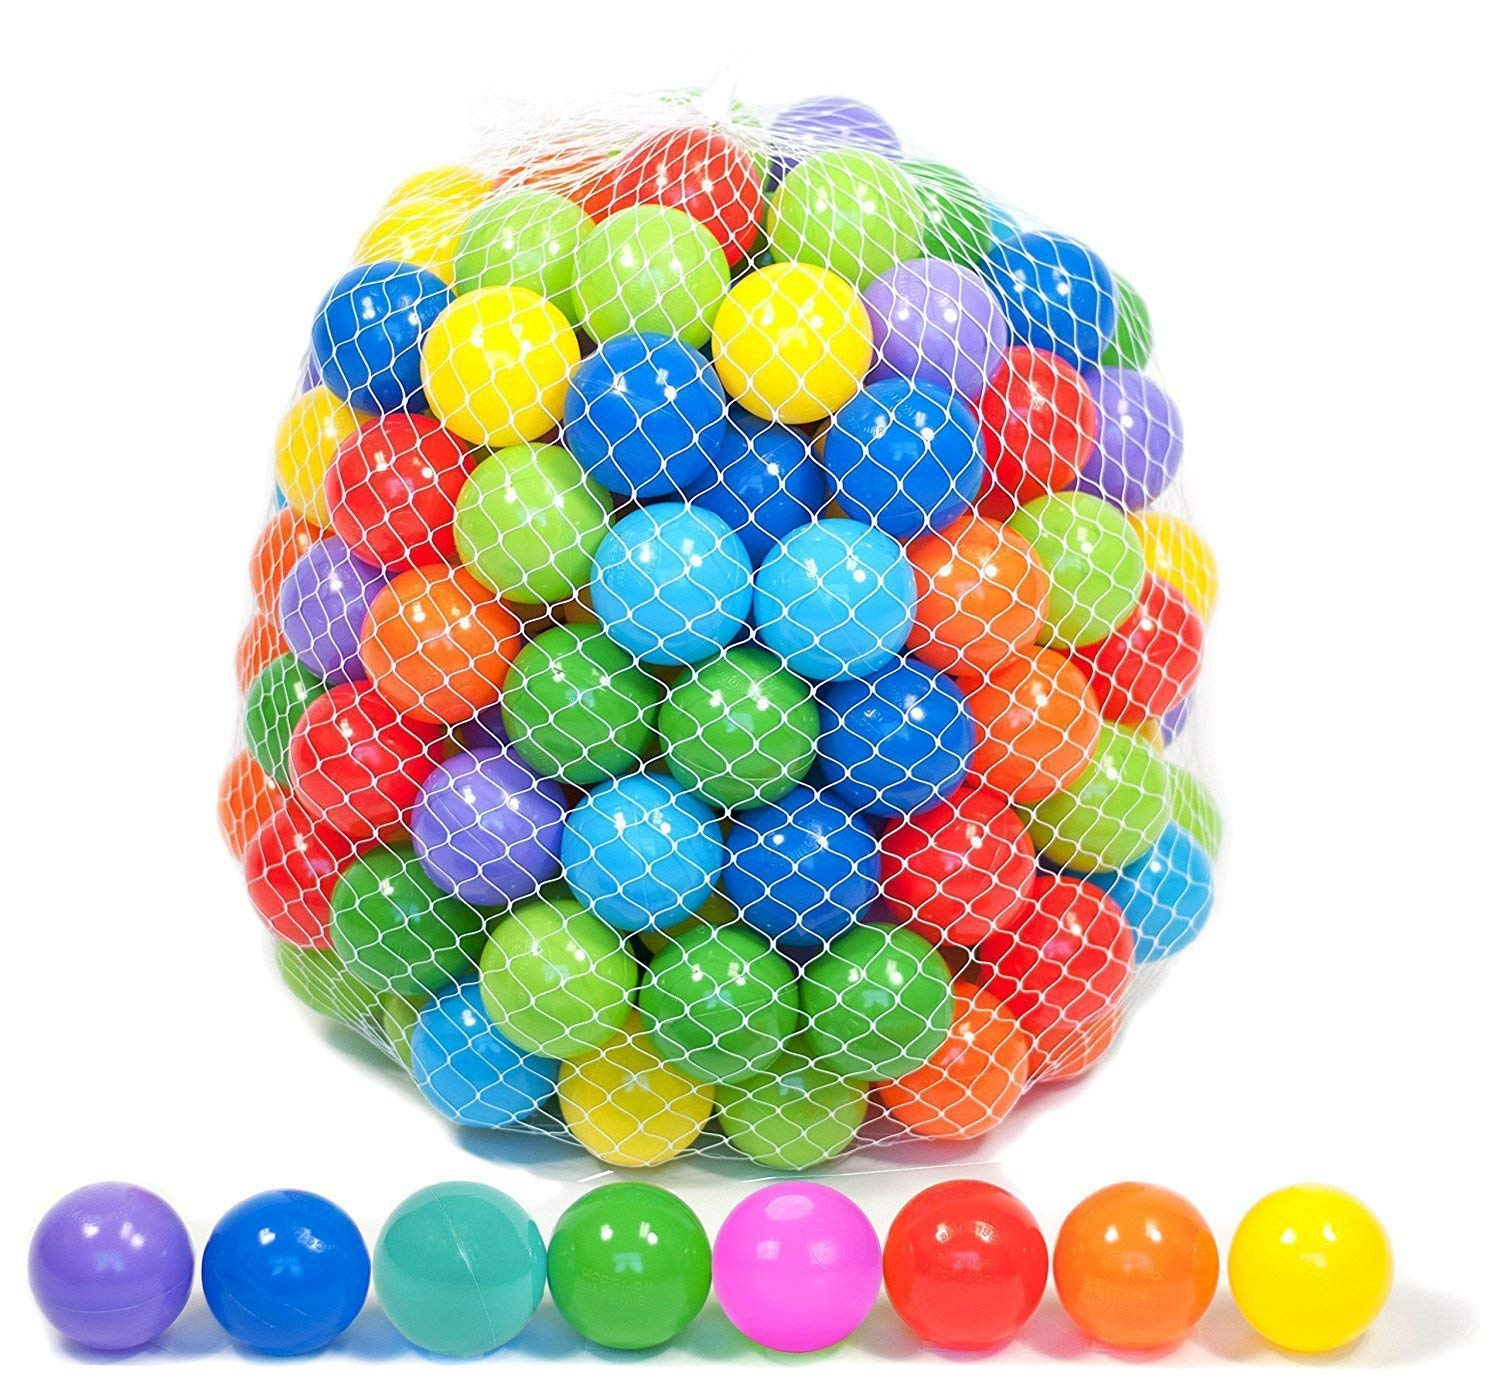 Playz 200 Soft Plastic Mini Play Balls with 8 Vibrant Colors